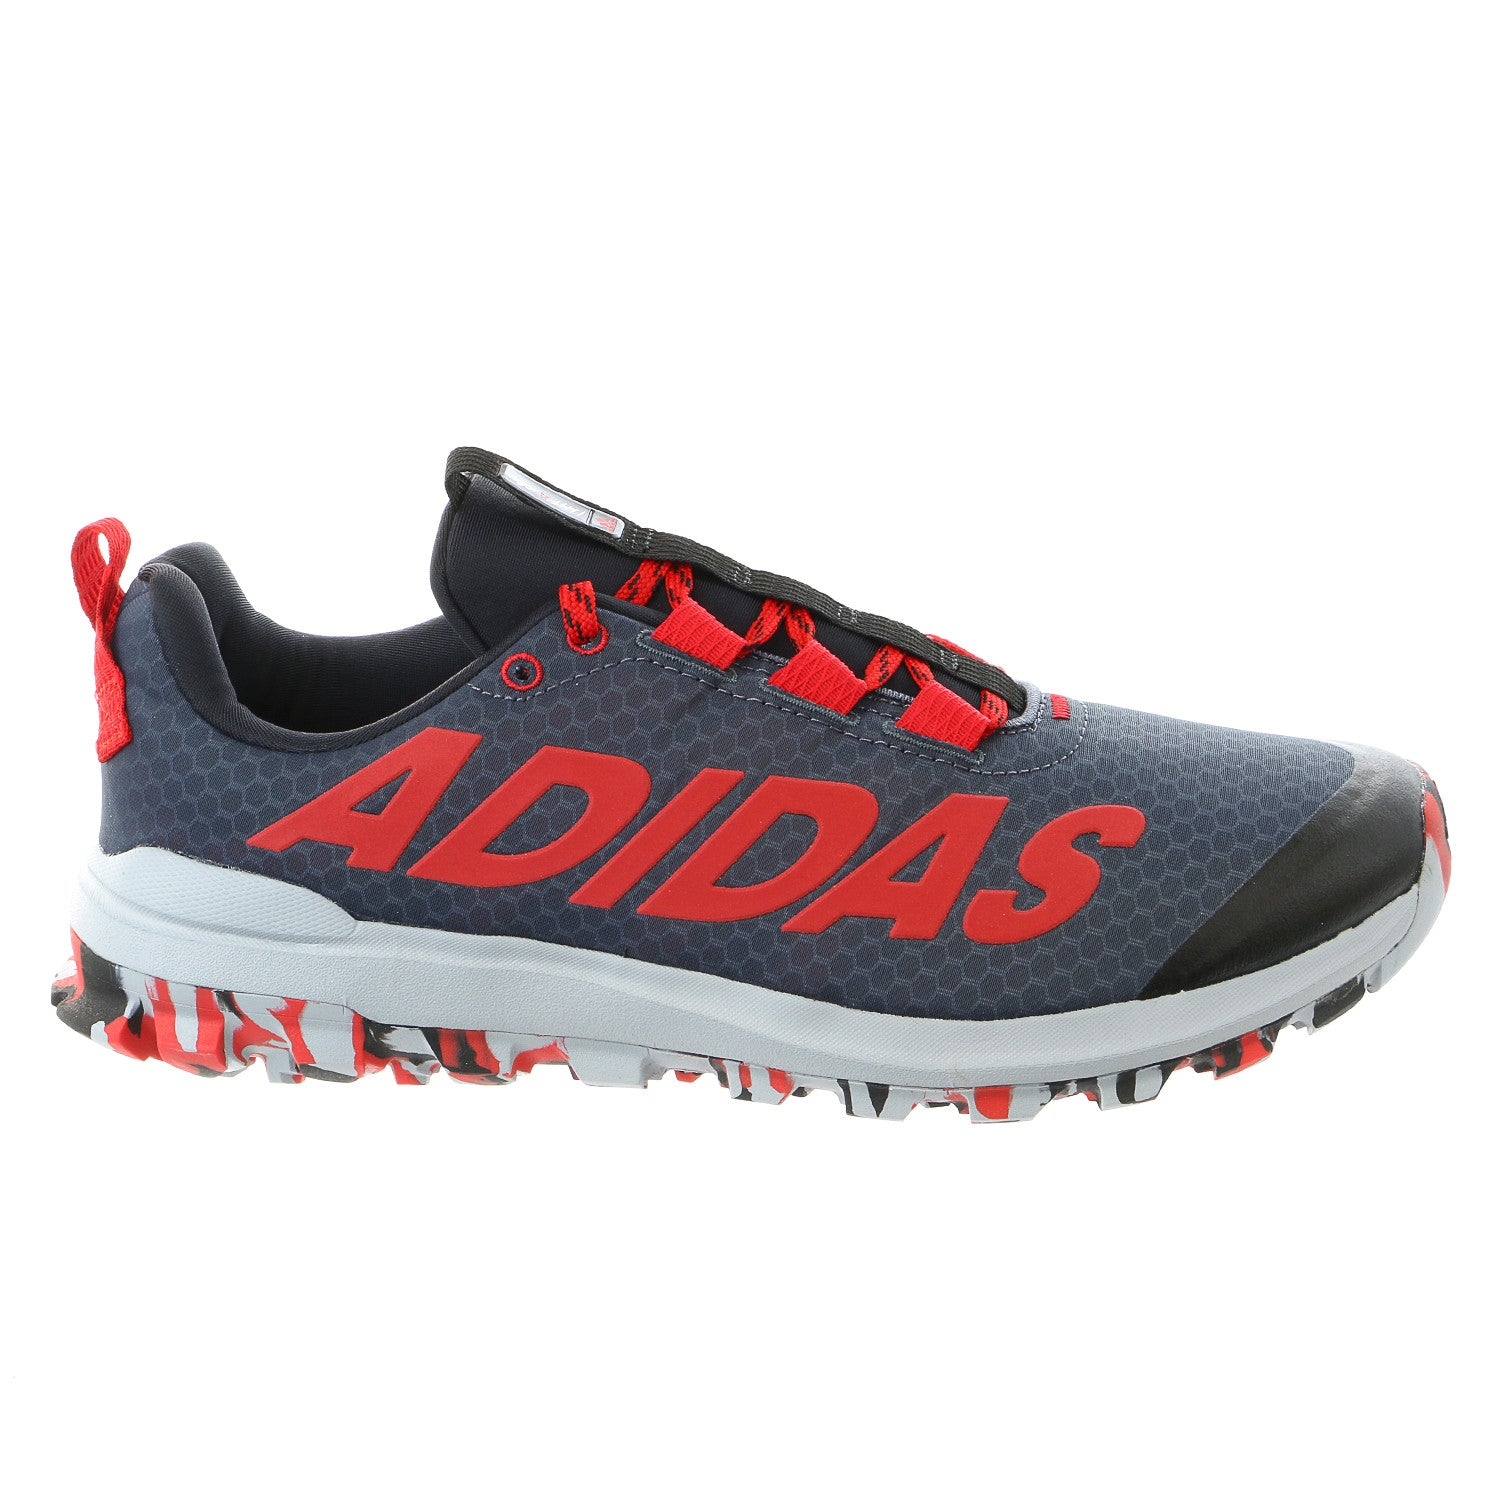 b54140879c106 Adidas Vigor 6 TR M Trail Running Sneaker Shoe - Black Red Light Grey - Mens